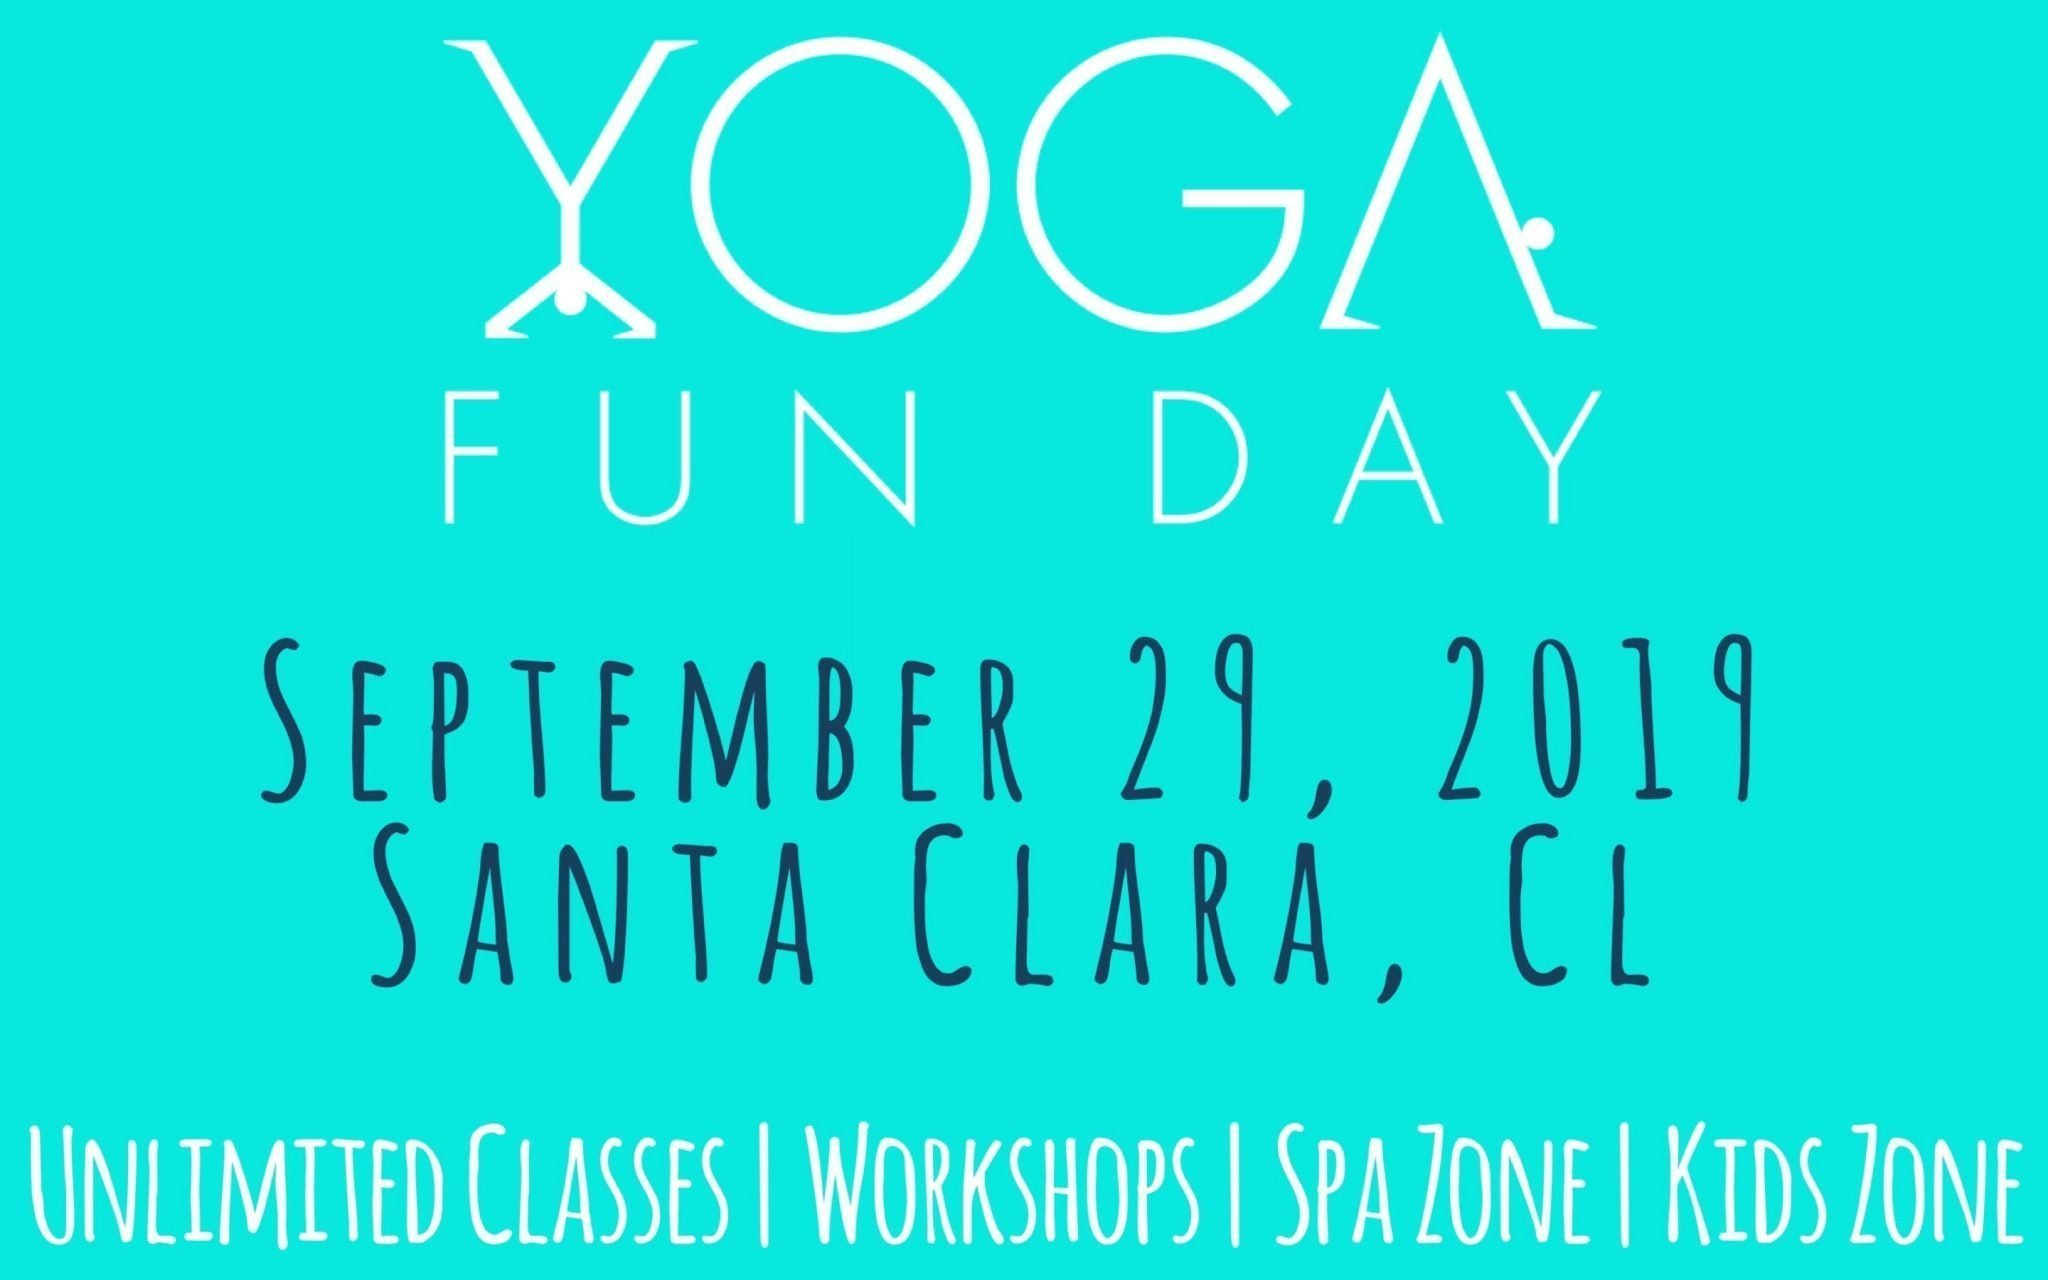 Yoga Festival: Yoga Fun Day Santa Clara